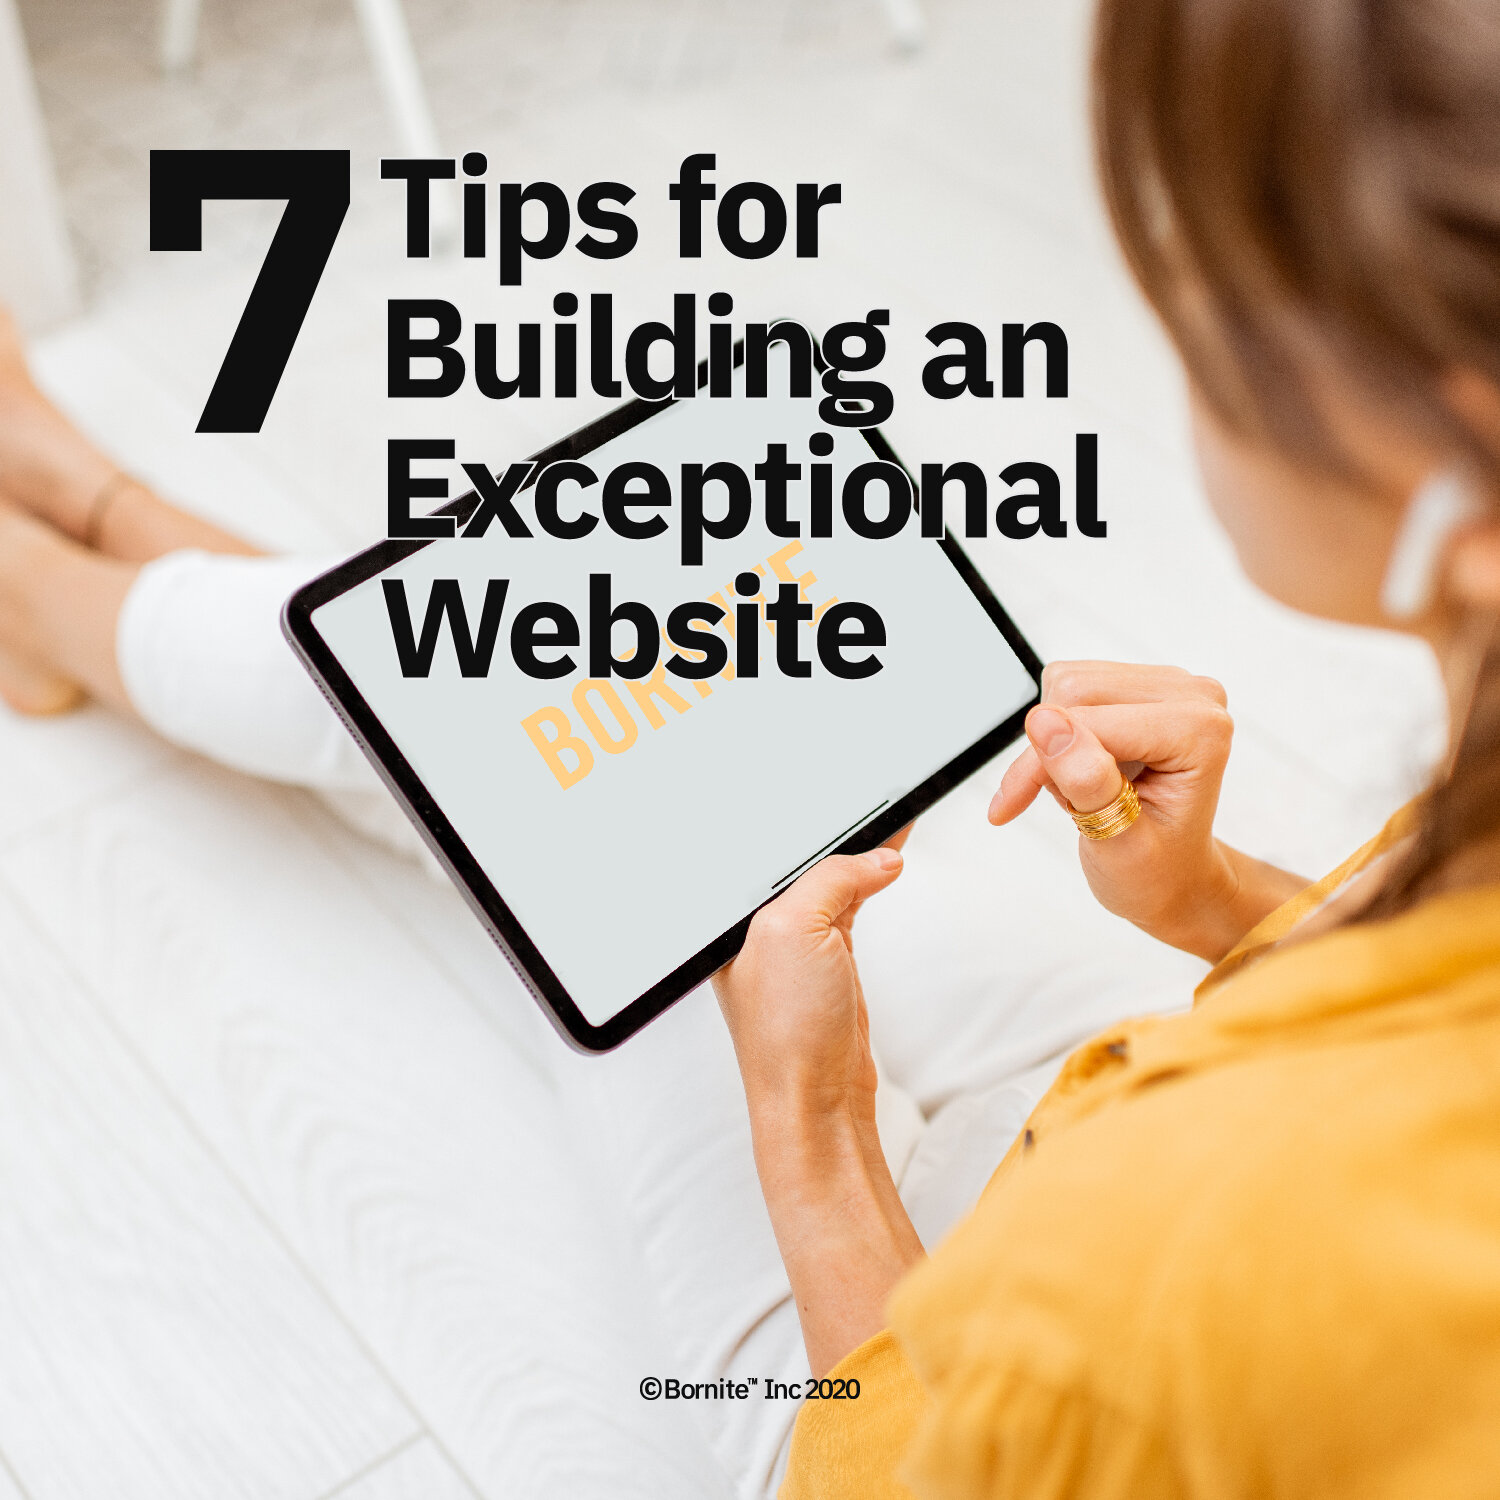 7 Tips for Building an Exceptional Website